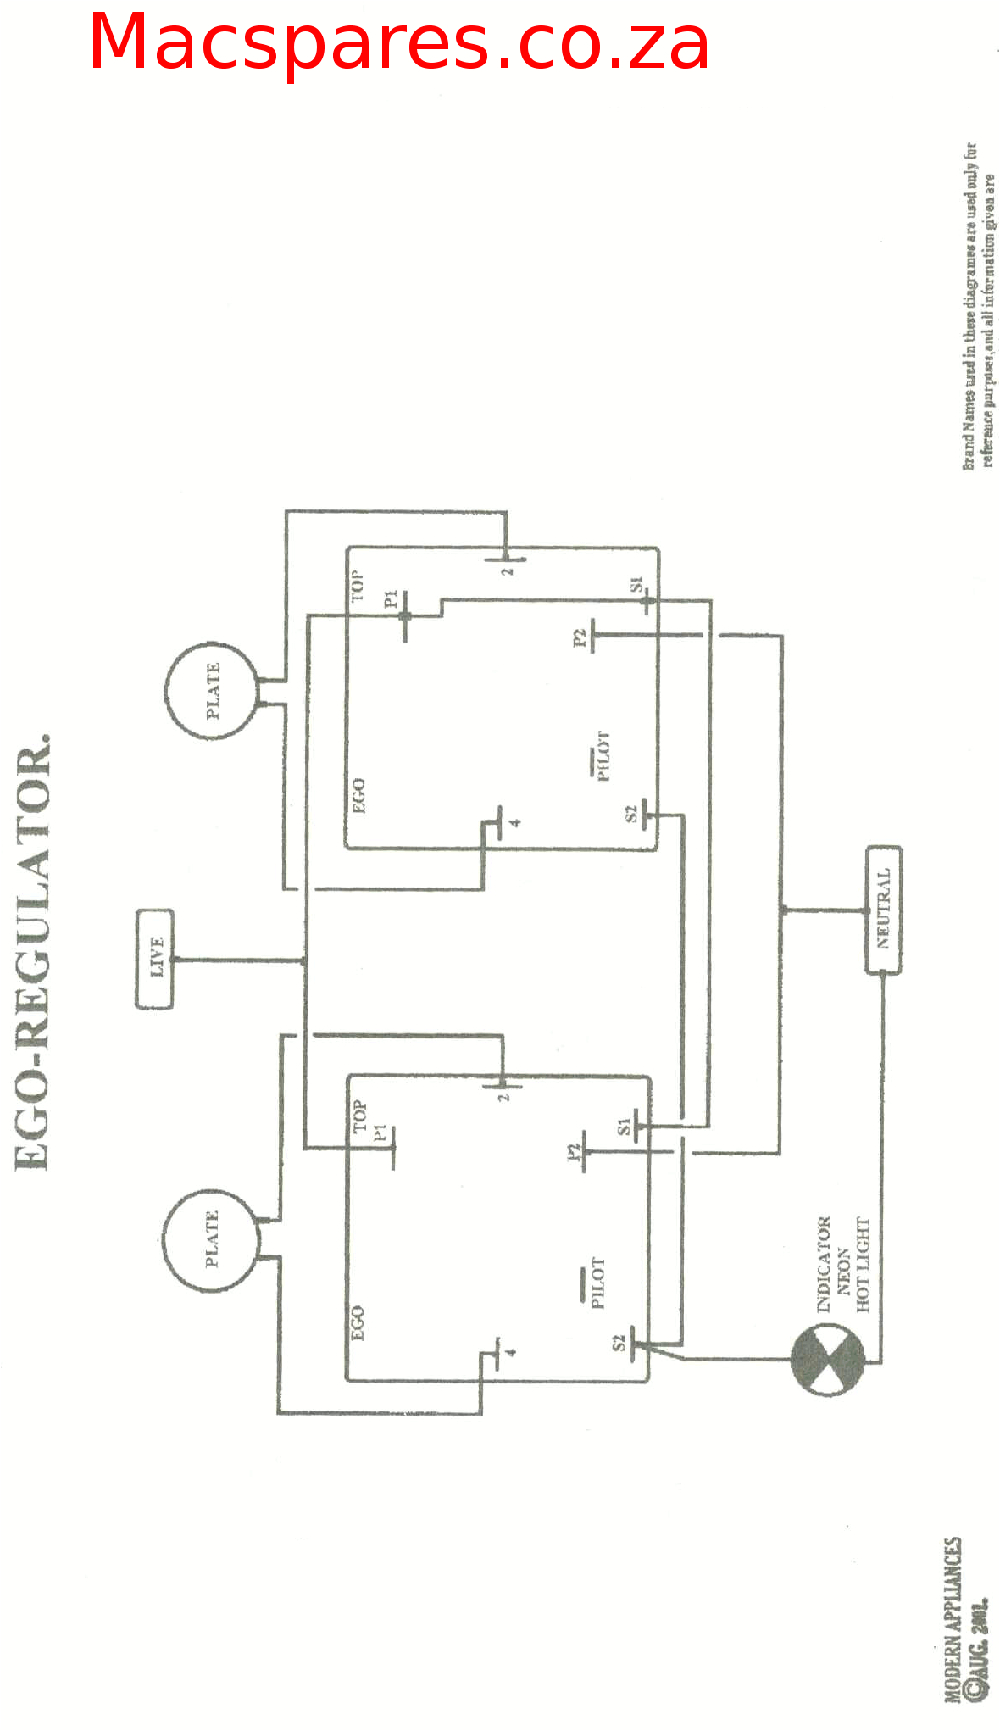 rotary 3 heat switch a rotary 6 position switch a two plate hotplate connection